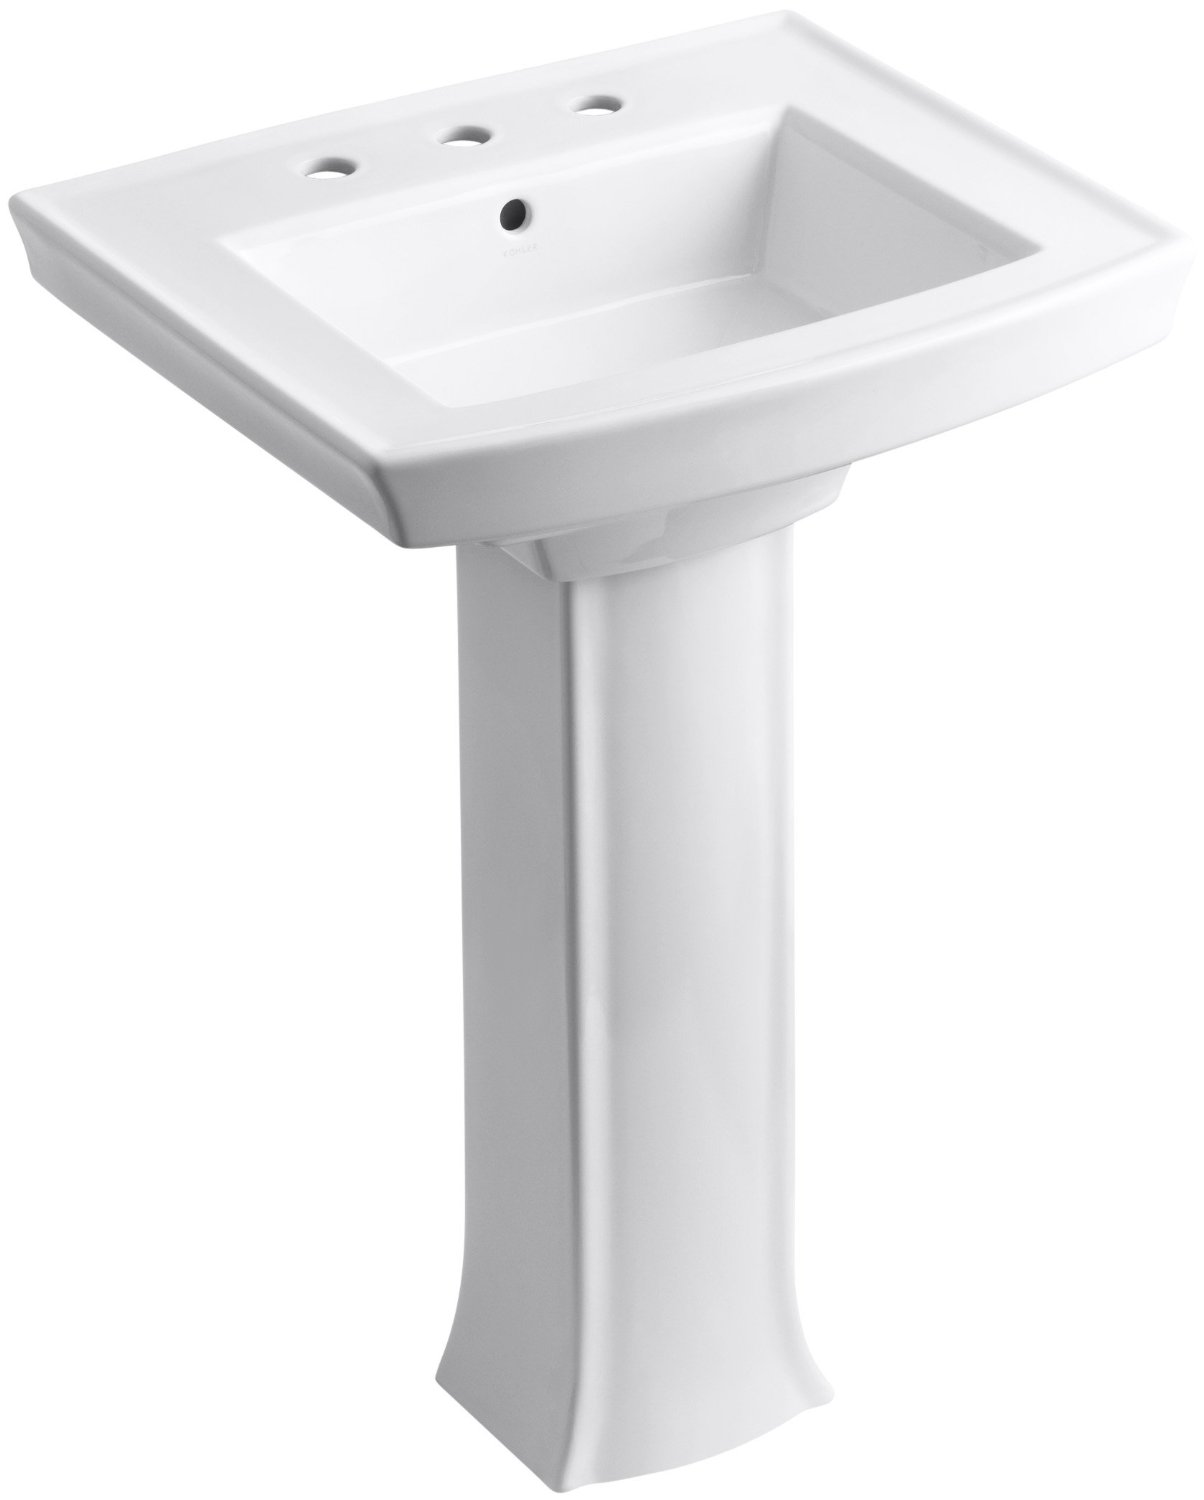 Top 10 Best Kohler Sinks - [Reviews, Guides&Top Picks 2018]